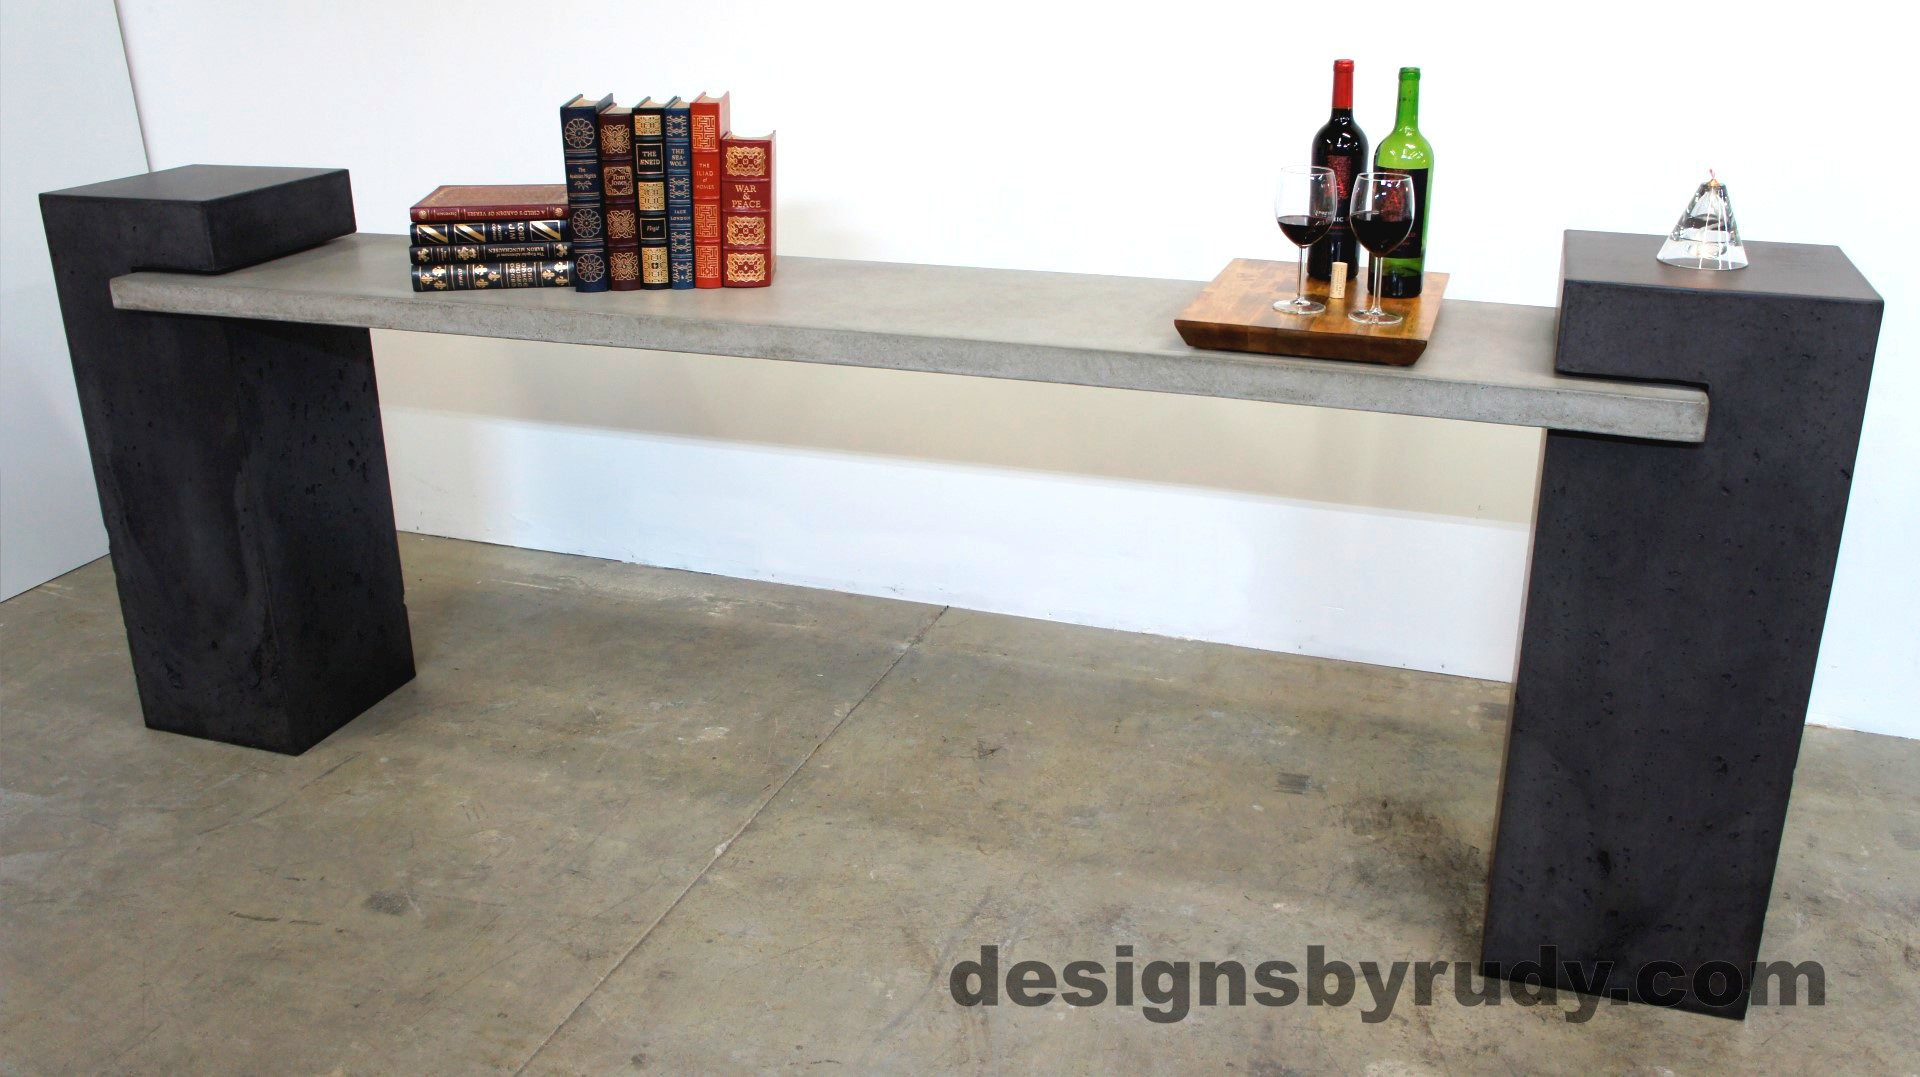 Concrete Buffet Table designed by Designs by Rudy